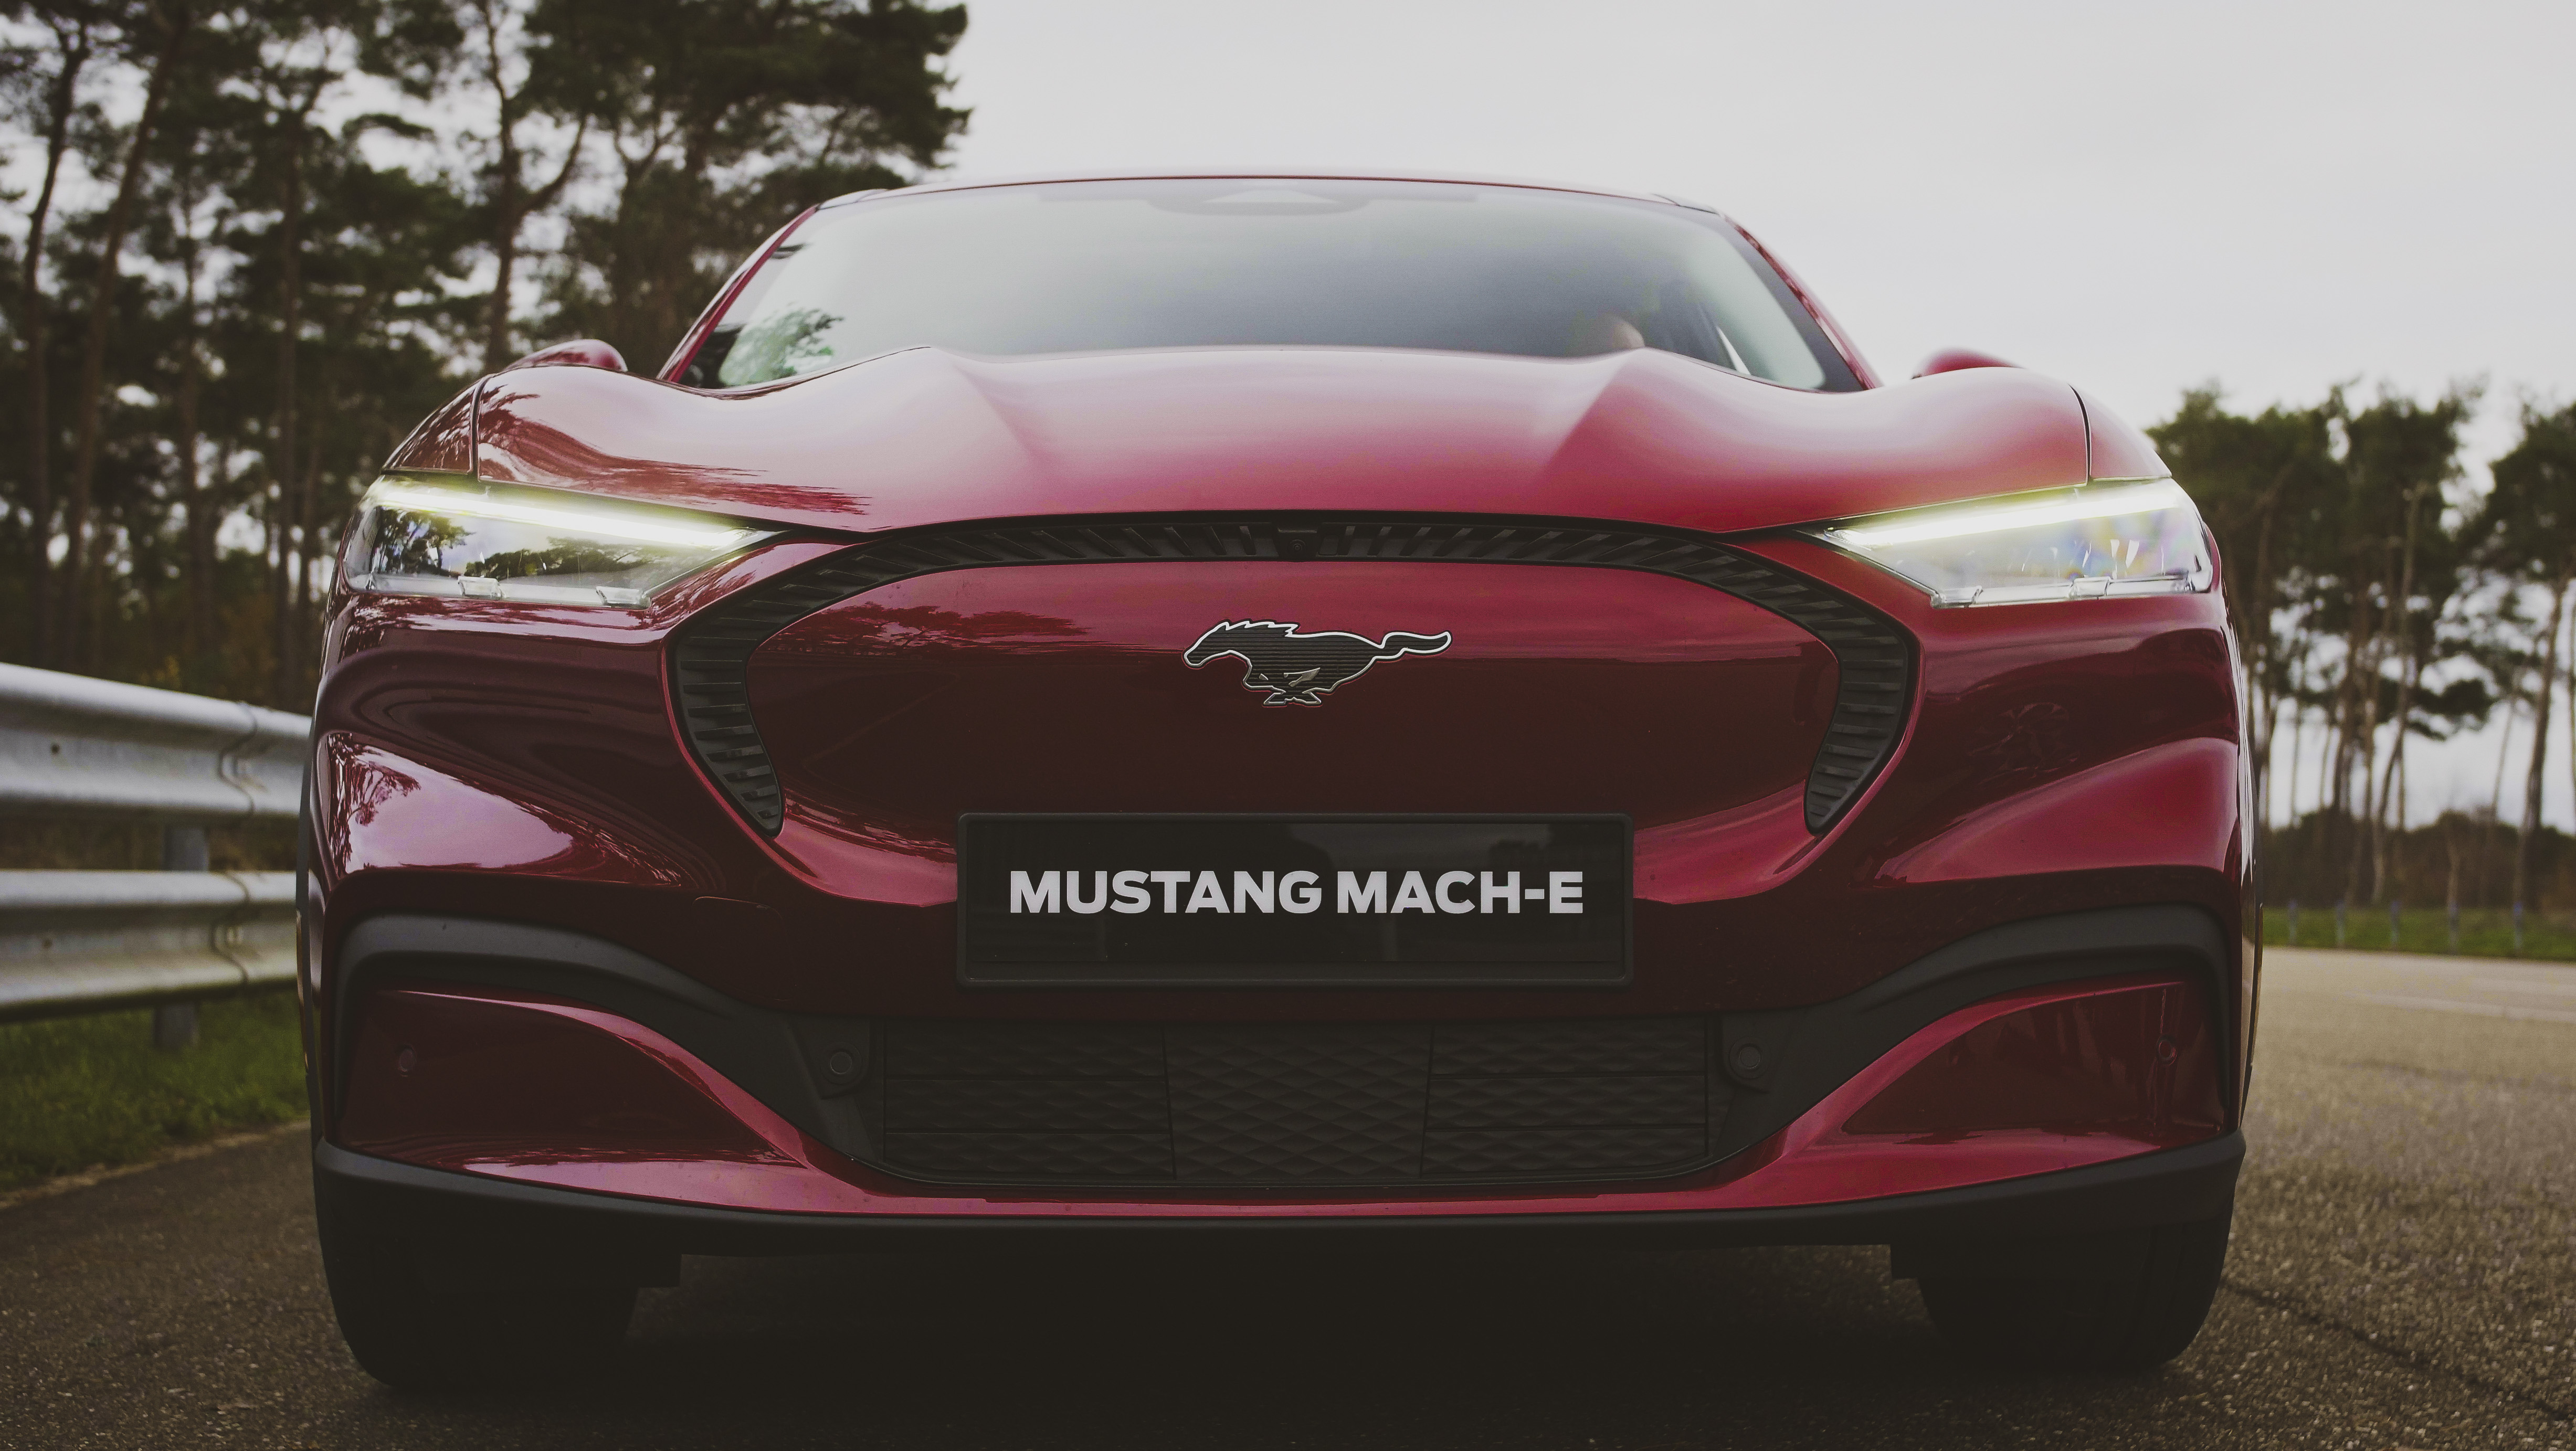 Ford-mustang-mache-electric-car-360video-360drone